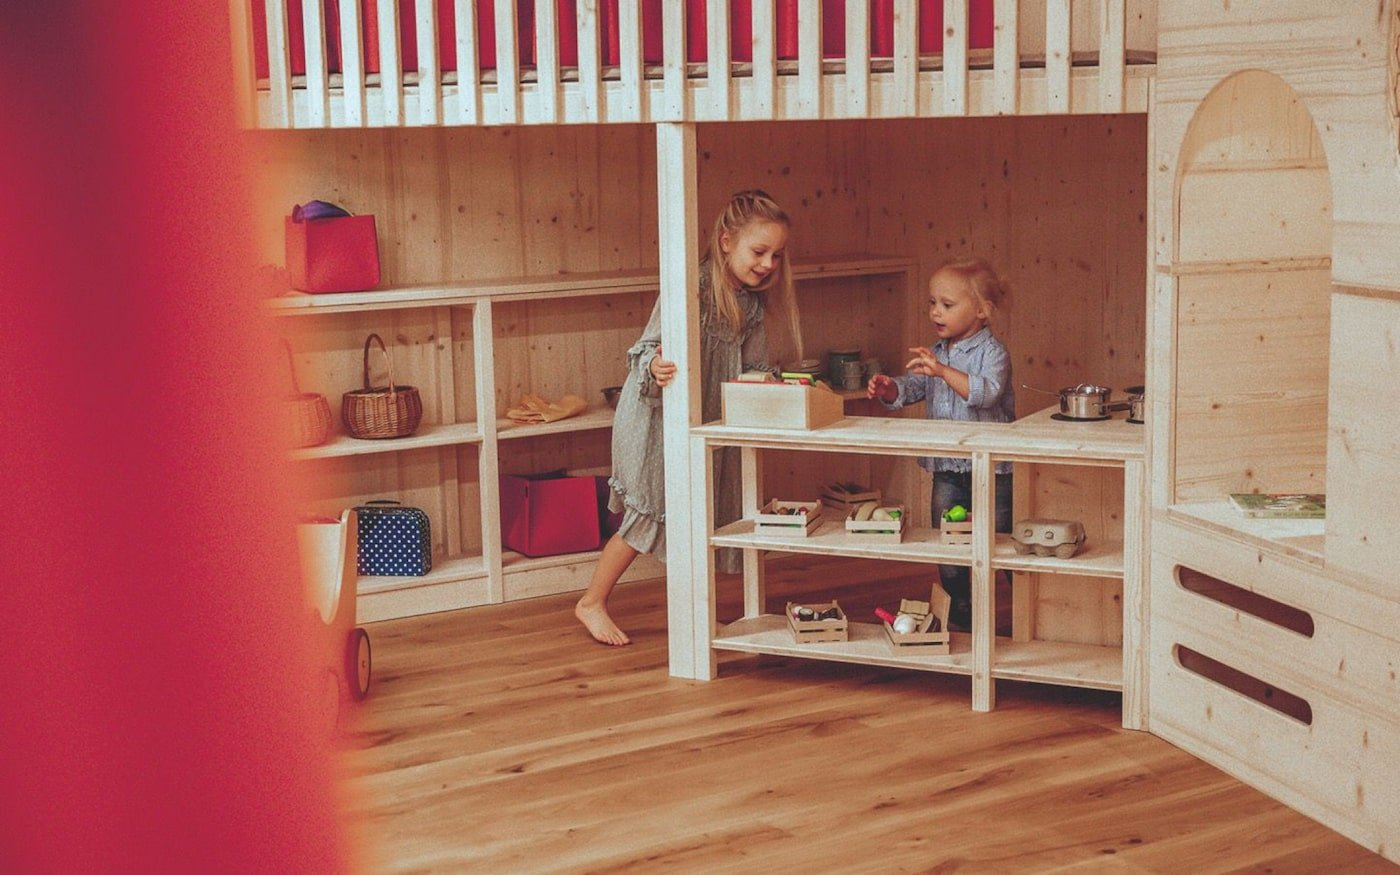 Kids playing with toys in sustainable childcare centre